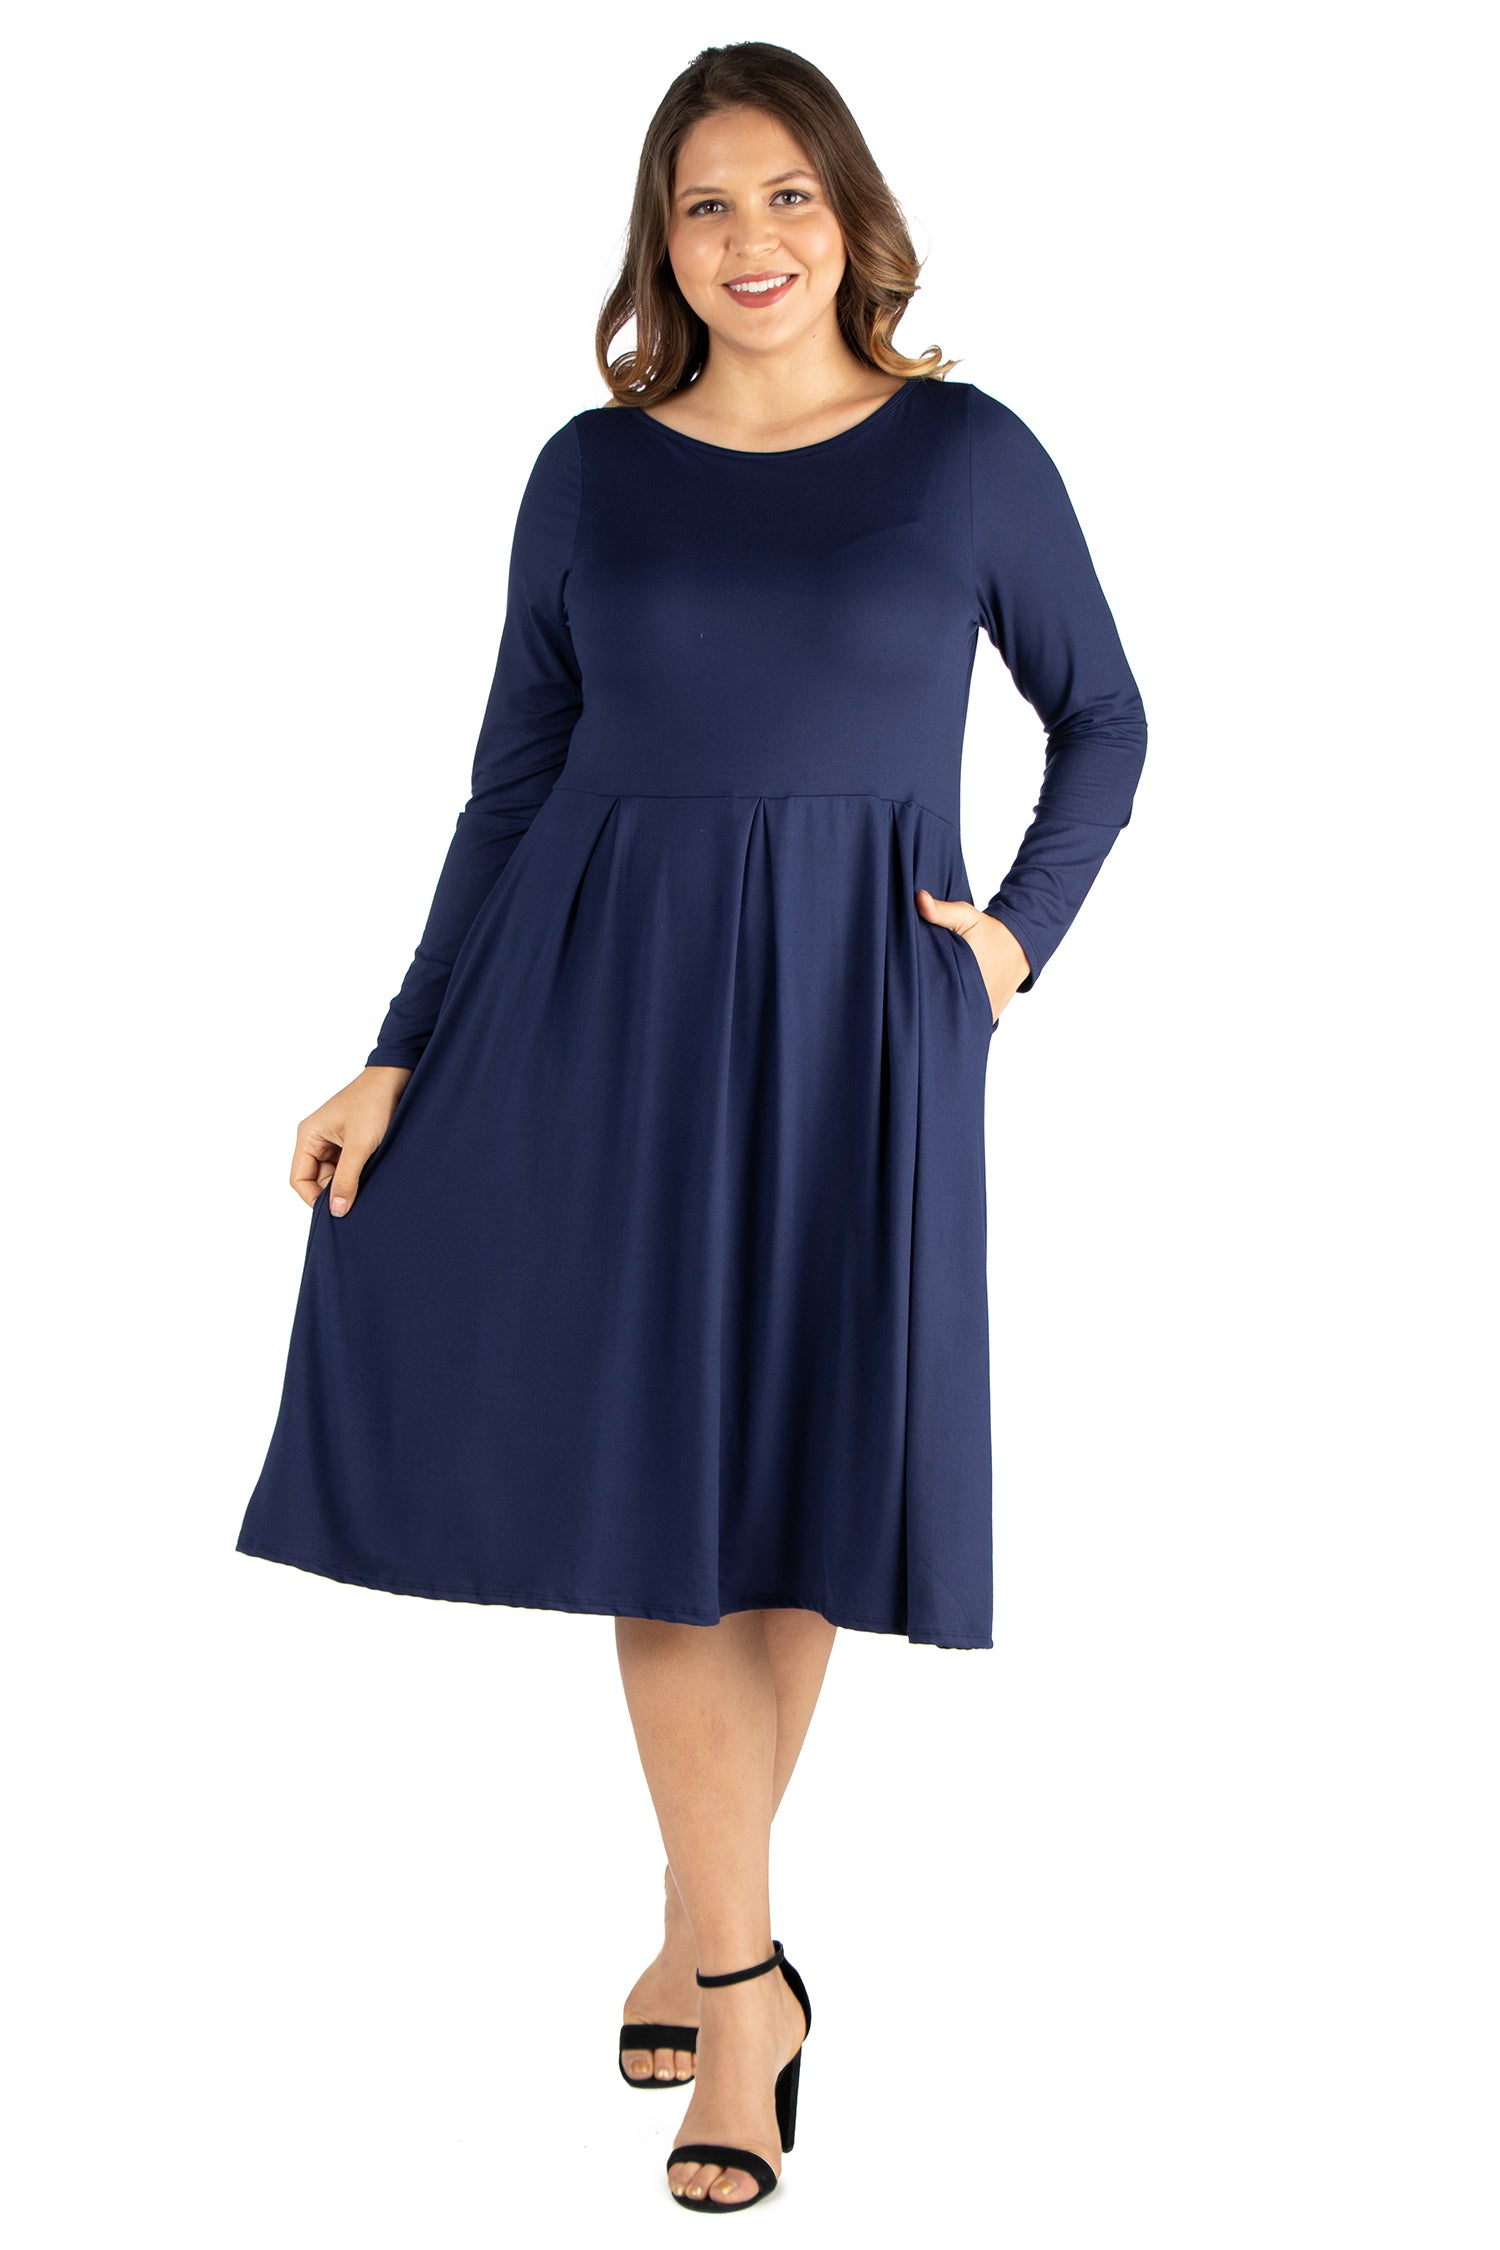 24seven Comfort Apparel Long Sleeve Fit and Flare Plus Size Midi Dress-Dresses-24Seven Comfort Apparel-NAVY-1X-24/7 Comfort Apparel